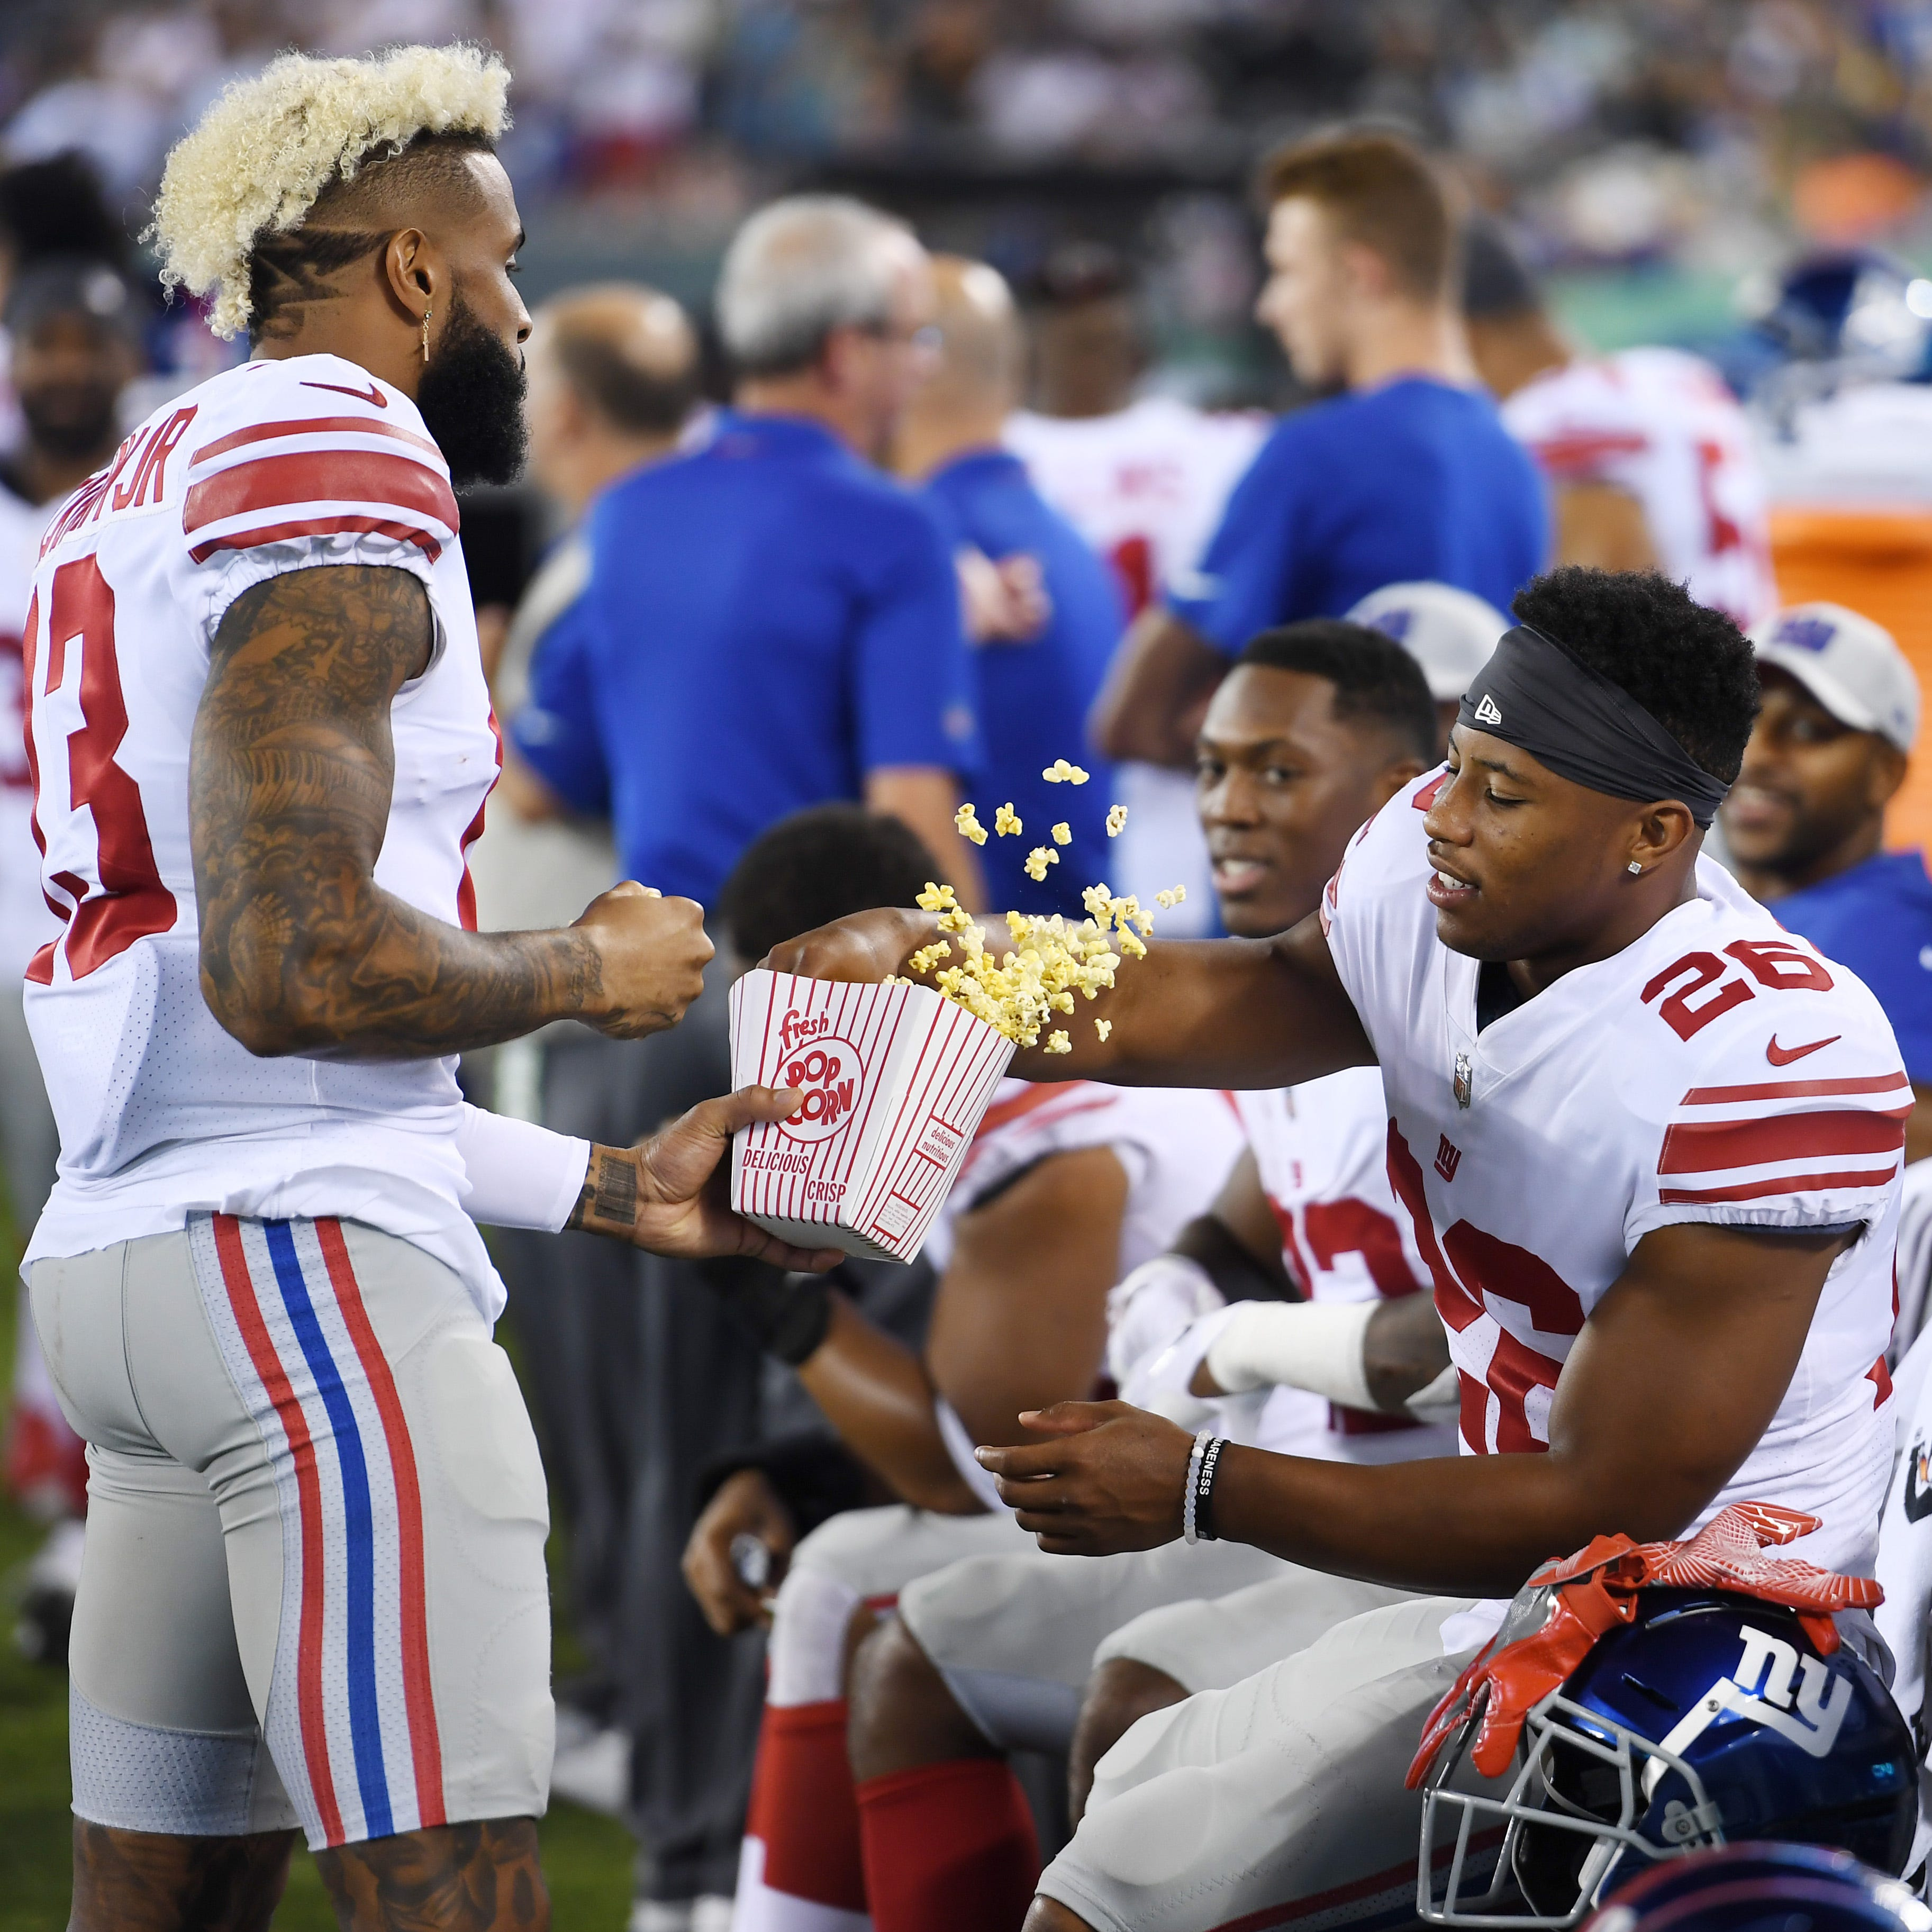 Saquon Barkley finishes 3rd in NFL Pro Bowl fan voting behind Drew Brees, Patrick Mahomes